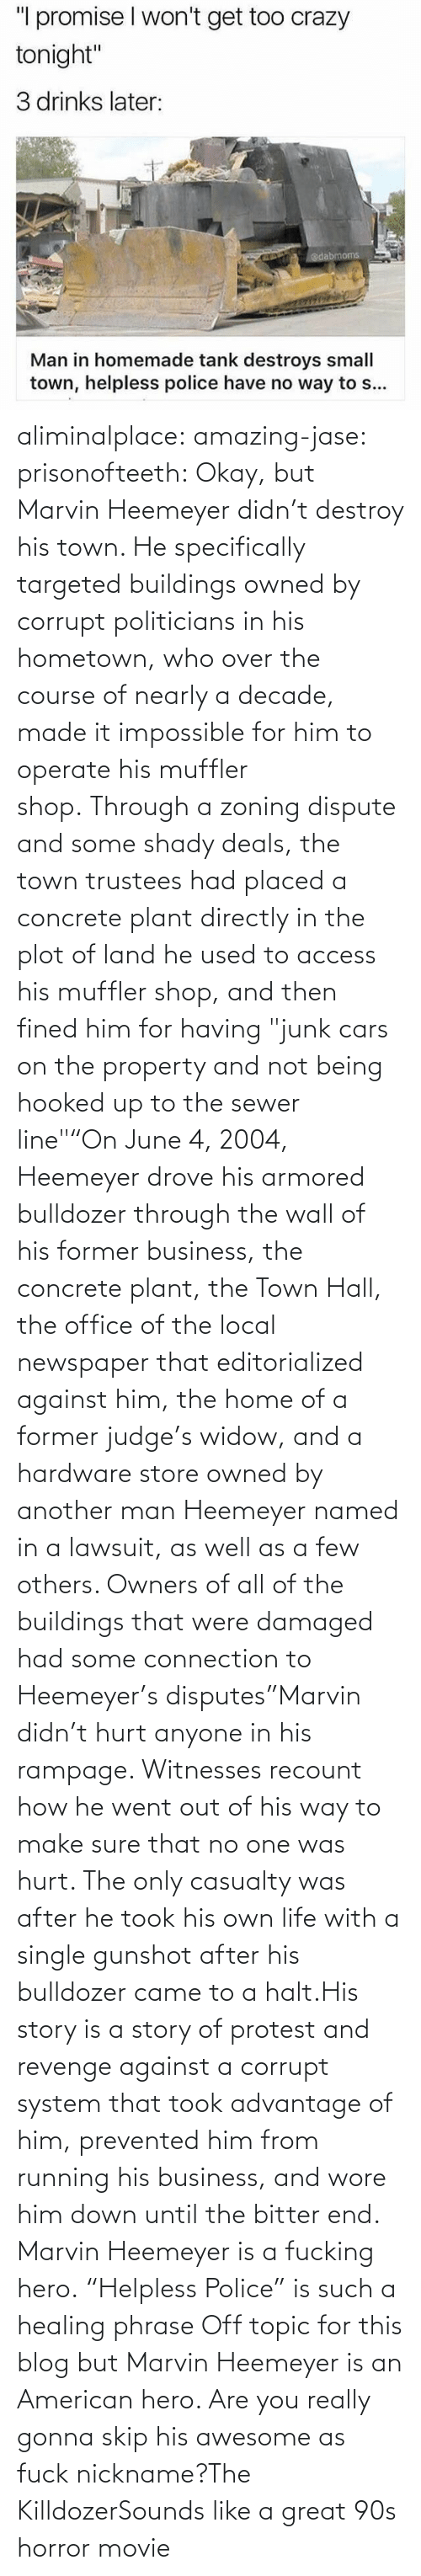 "Running: aliminalplace: amazing-jase:  prisonofteeth: Okay, but Marvin Heemeyer didn't destroy his town. He specifically targeted buildings owned by corrupt politicians in his hometown, who over the course of nearly a decade, made it impossible for him to operate his muffler shop. Through a zoning dispute and some shady deals, the town trustees had placed a concrete plant directly in the plot of land he used to access his muffler shop, and then fined him for having ""junk cars on the property and not being hooked up to the sewer line""""On June 4, 2004, Heemeyer drove his armored bulldozer through the wall of his former business, the concrete plant, the Town Hall, the office of the local newspaper that editorialized against him, the home of a former judge's widow, and a hardware store owned by another man Heemeyer named in a lawsuit, as well as a few others. Owners of all of the buildings that were damaged had some connection to Heemeyer's disputes""Marvin didn't hurt anyone in his rampage. Witnesses recount how he went out of his way to make sure that no one was hurt. The only casualty was after he took his own life with a single gunshot after his bulldozer came to a halt.His story is a story of protest and revenge against a corrupt system that took advantage of him, prevented him from running his business, and wore him down until the bitter end. Marvin Heemeyer is a fucking hero. ""Helpless Police"" is such a healing phrase    Off topic for this blog but Marvin Heemeyer is an American hero.     Are you really gonna skip his awesome as fuck nickname?The KilldozerSounds like a great 90s horror movie"